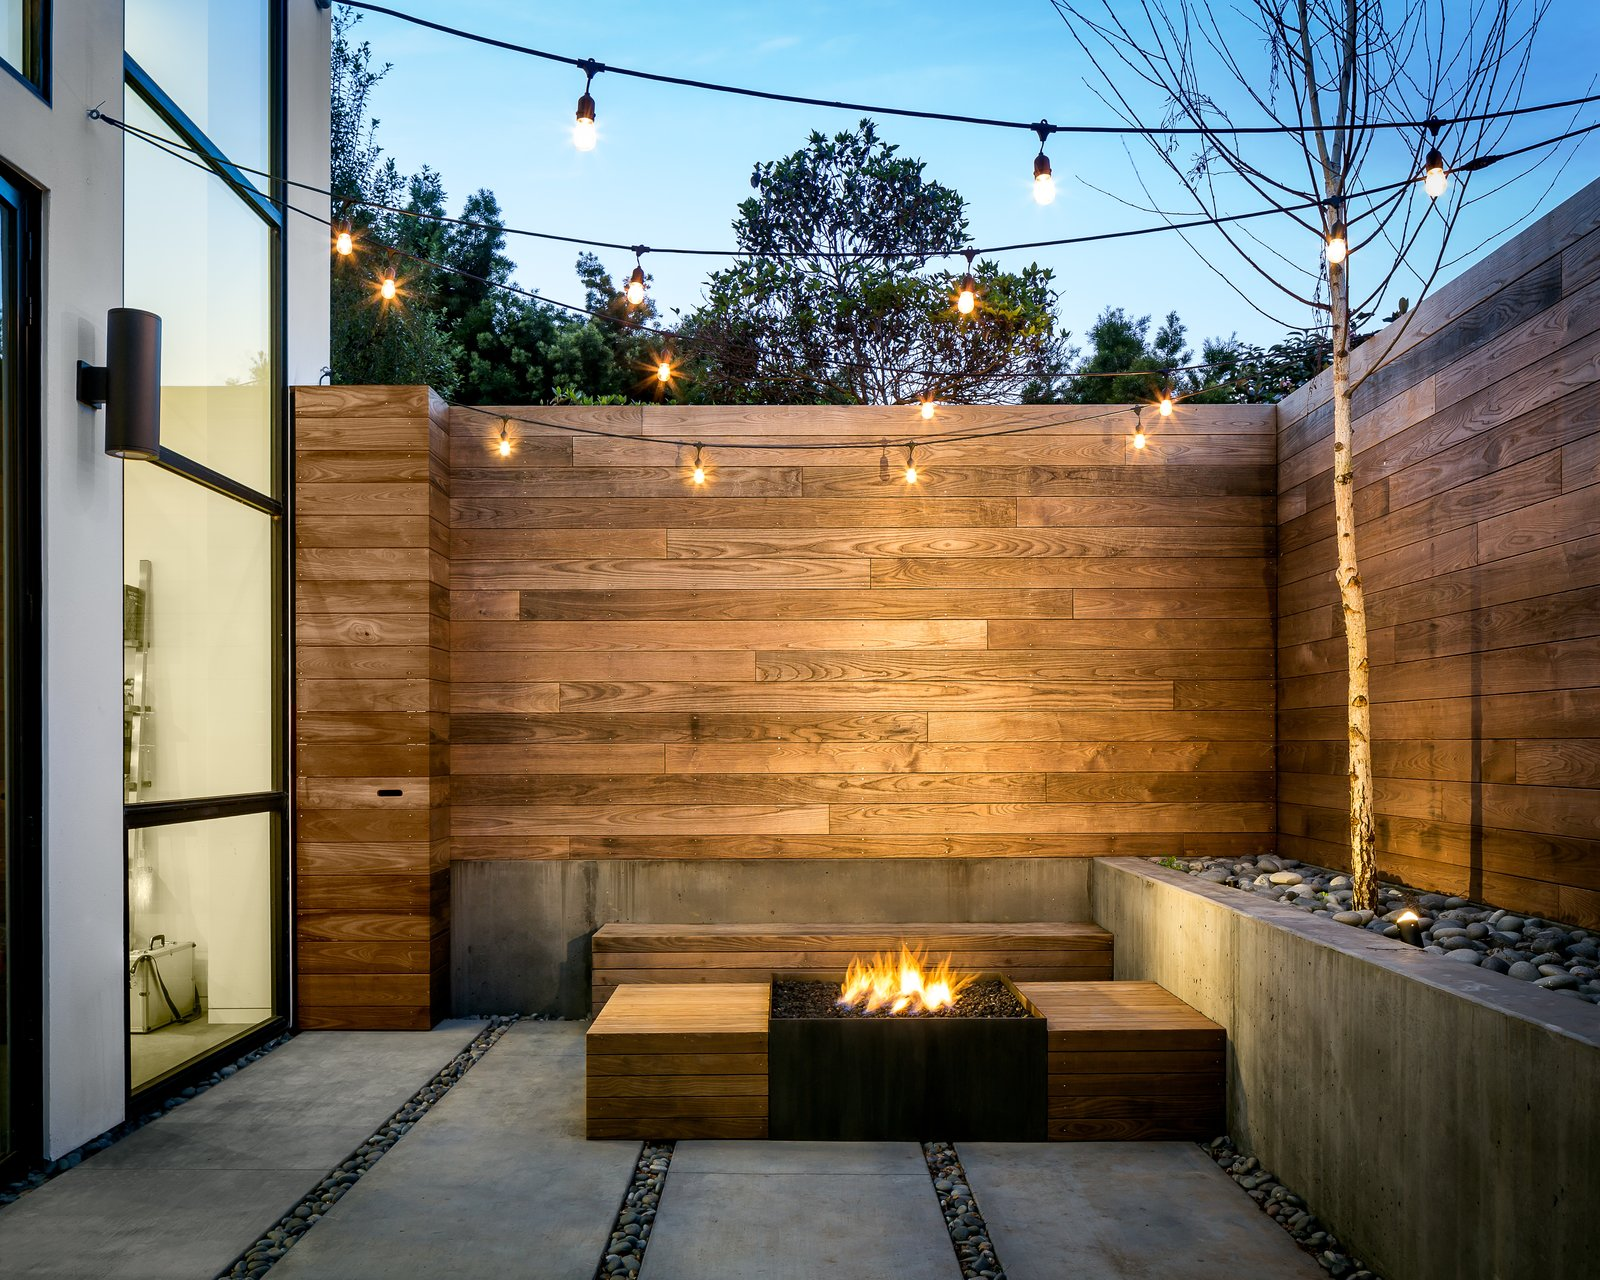 6 Outdoor Furniture Ideas That Will Make Your Terrace Unique outdoor furniture 6 Outdoor Furniture Ideas That Will Make Your Terrace One of a Kind Top 10 Outdoor Furniture Ideas That Will Make Your Terrace Unique 5